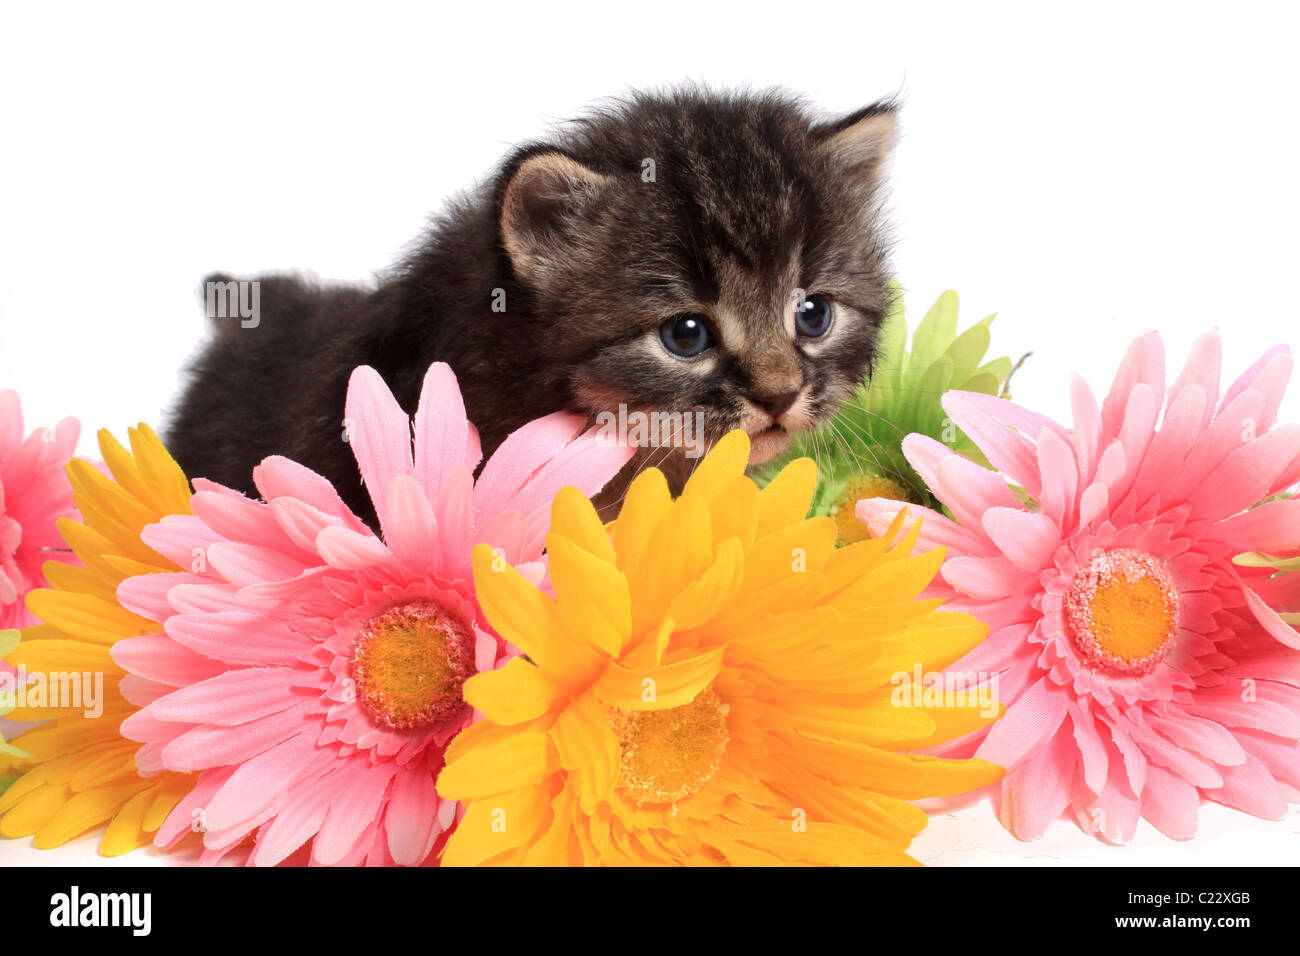 Little four week old black and beige striped kitten with colorful daisies on a white background - Stock Image